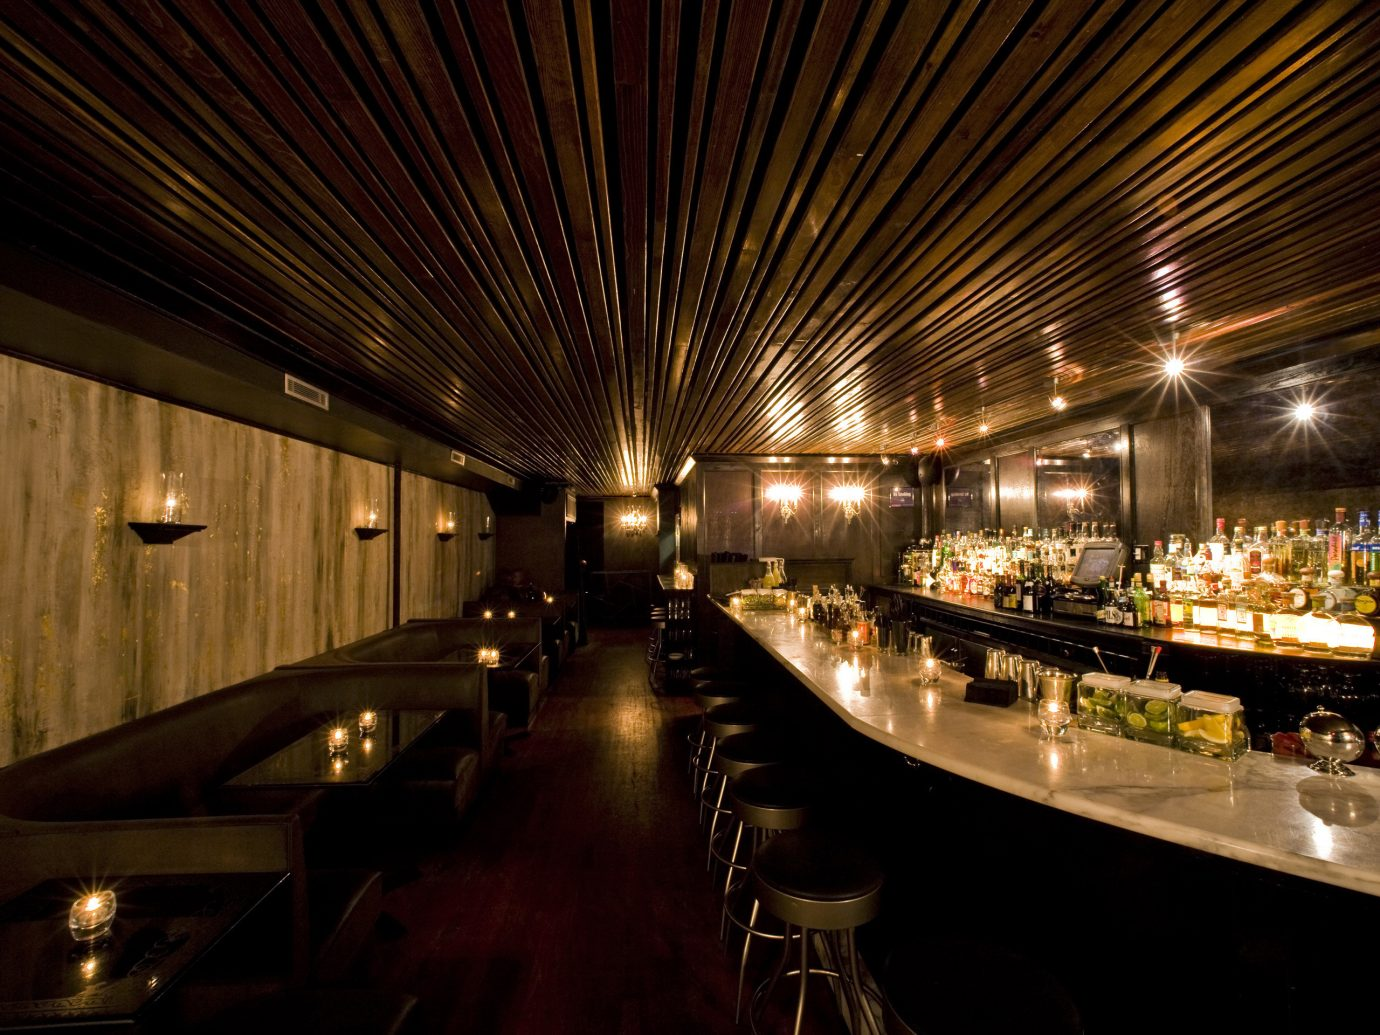 The Best Bars in NYC by Neighborhood: Where to Drink in the